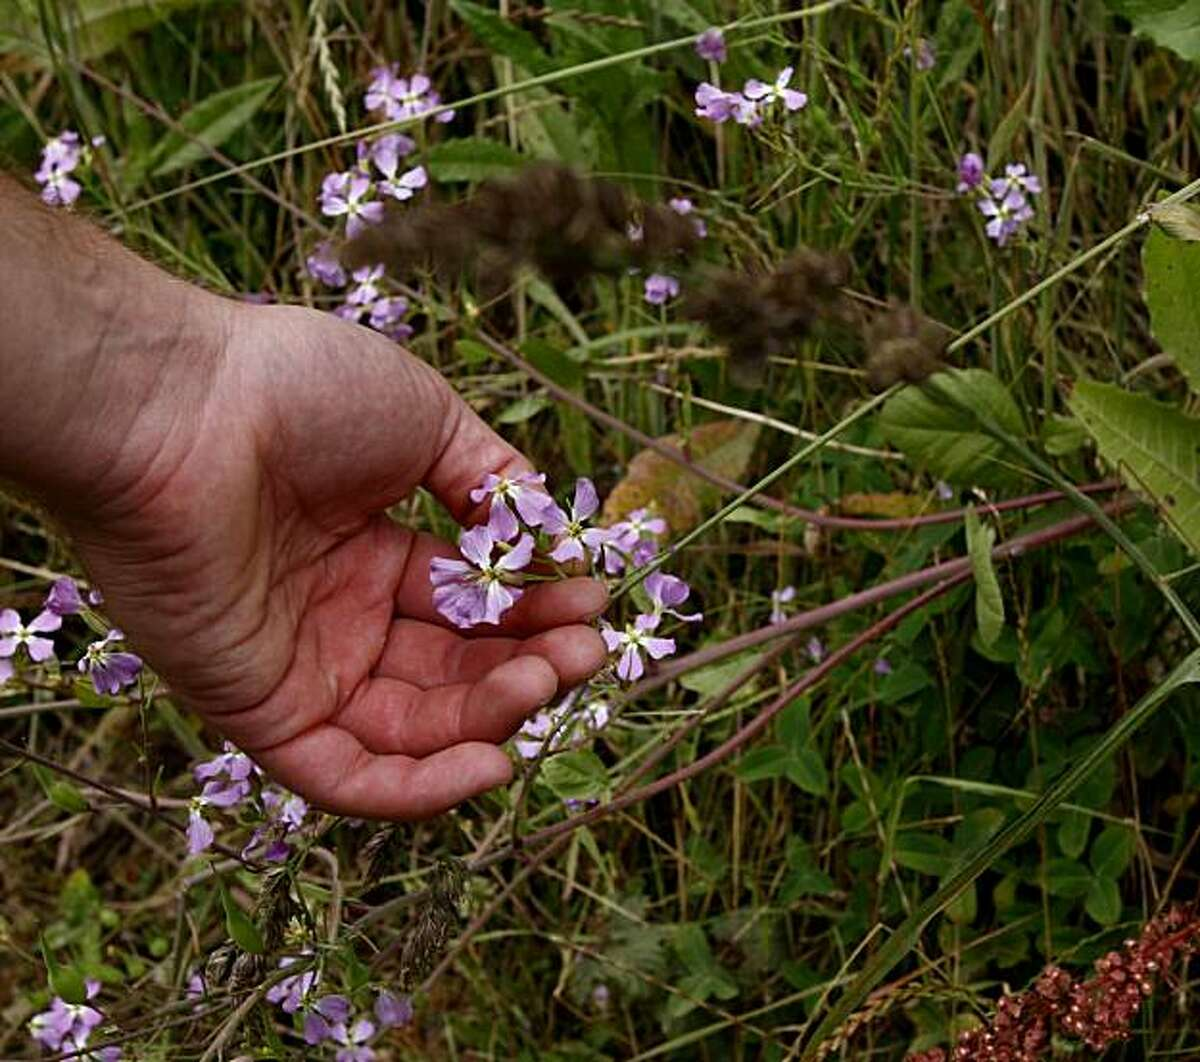 Iso Rabins forages for wild radish and mustard near Muir Beach on Monday, July 12, 2010 in Muir Beach, Calif.